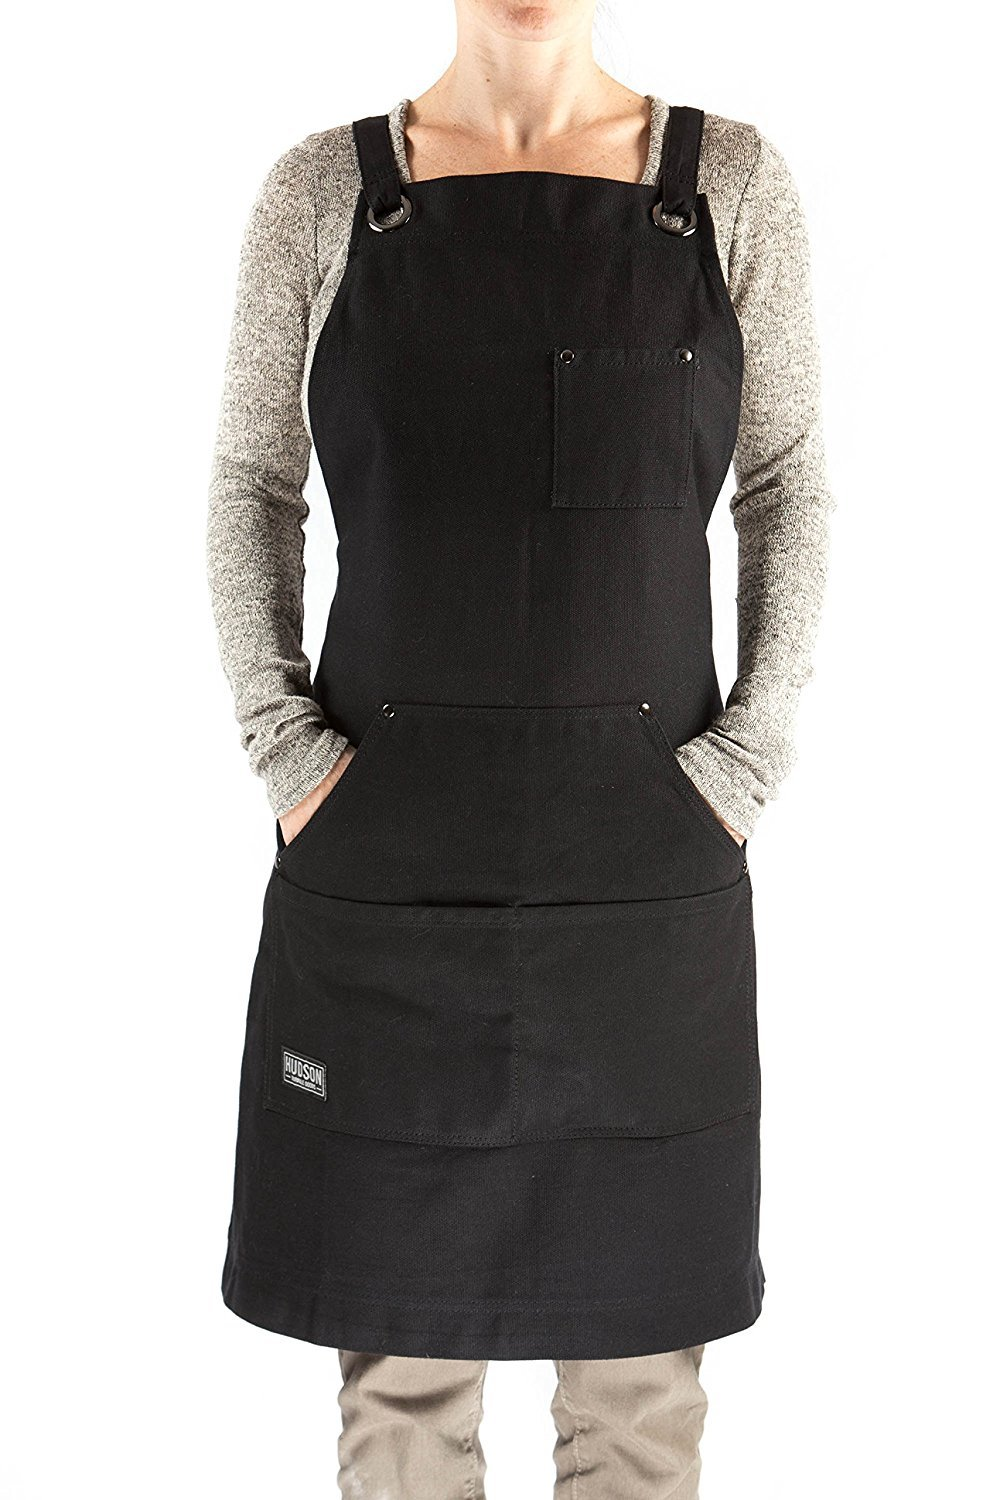 Hot Mens Womens Black Dishwasher Apron Waterproof for Men Women Chef, Black Commercial Restaurant and Home Kitchen